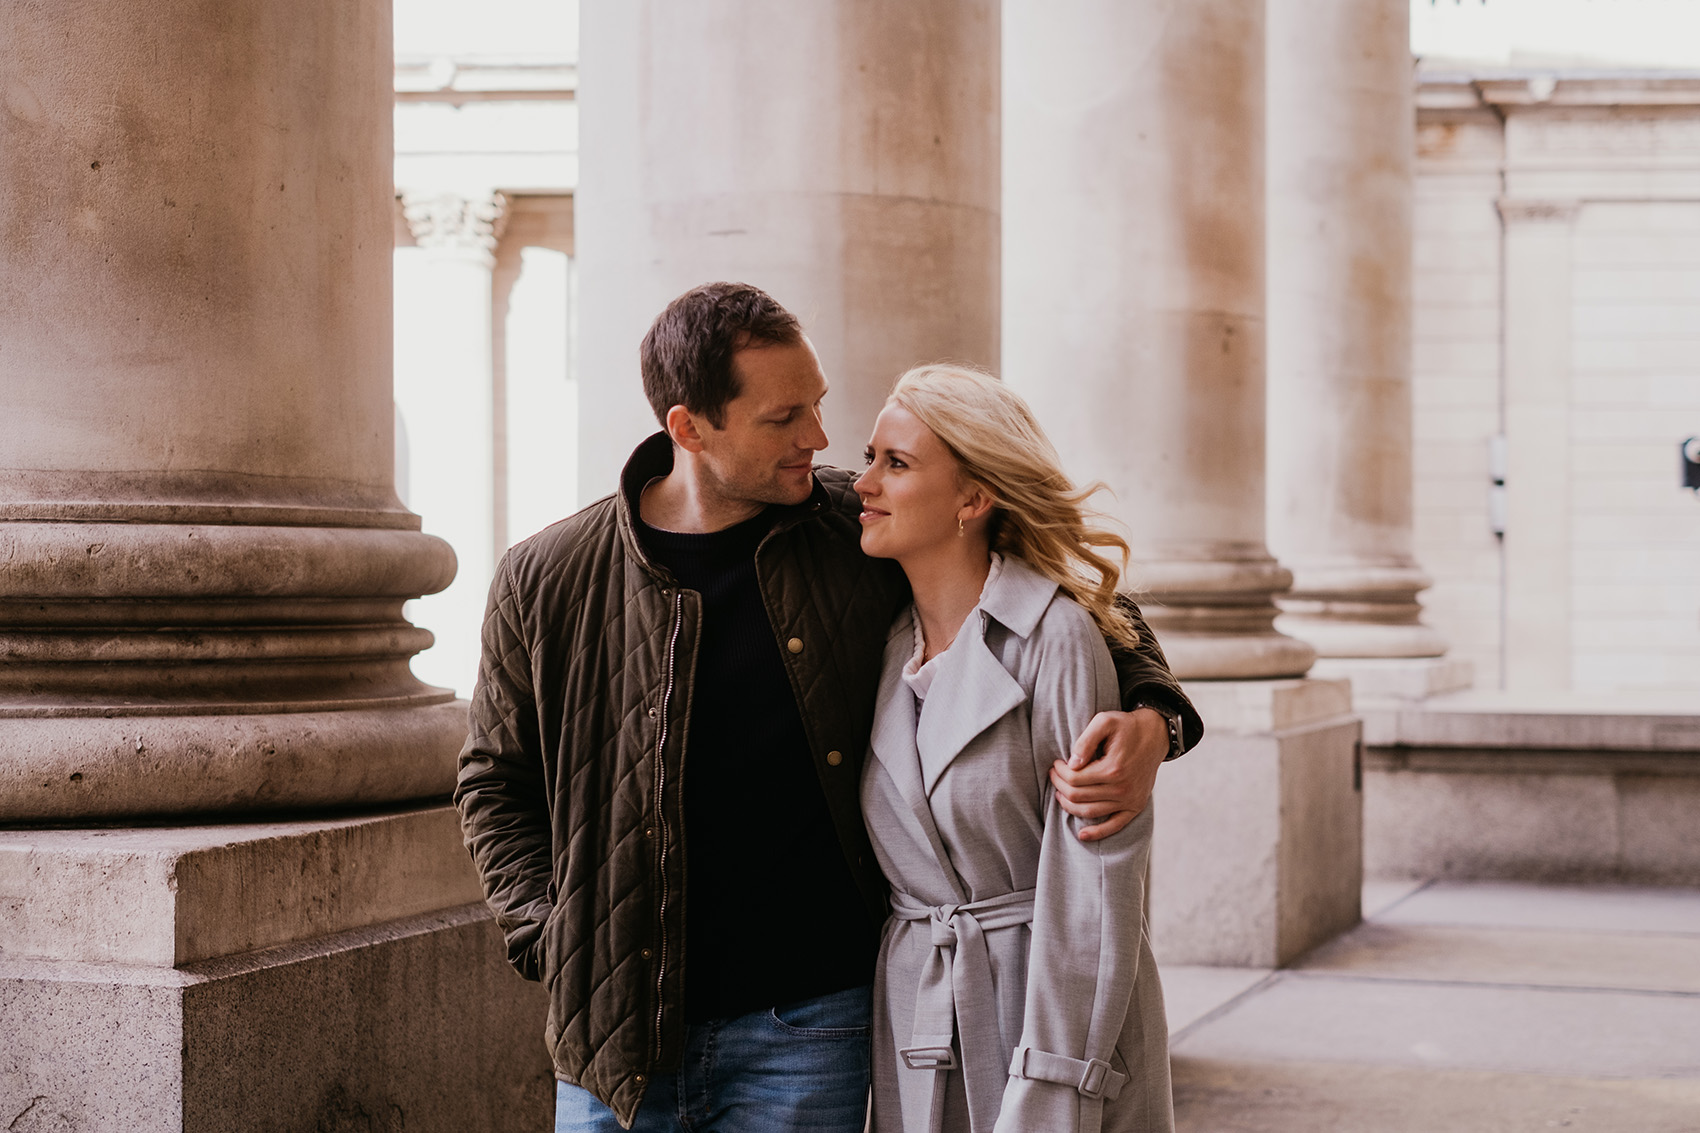 Relaxed engagement photography in central London